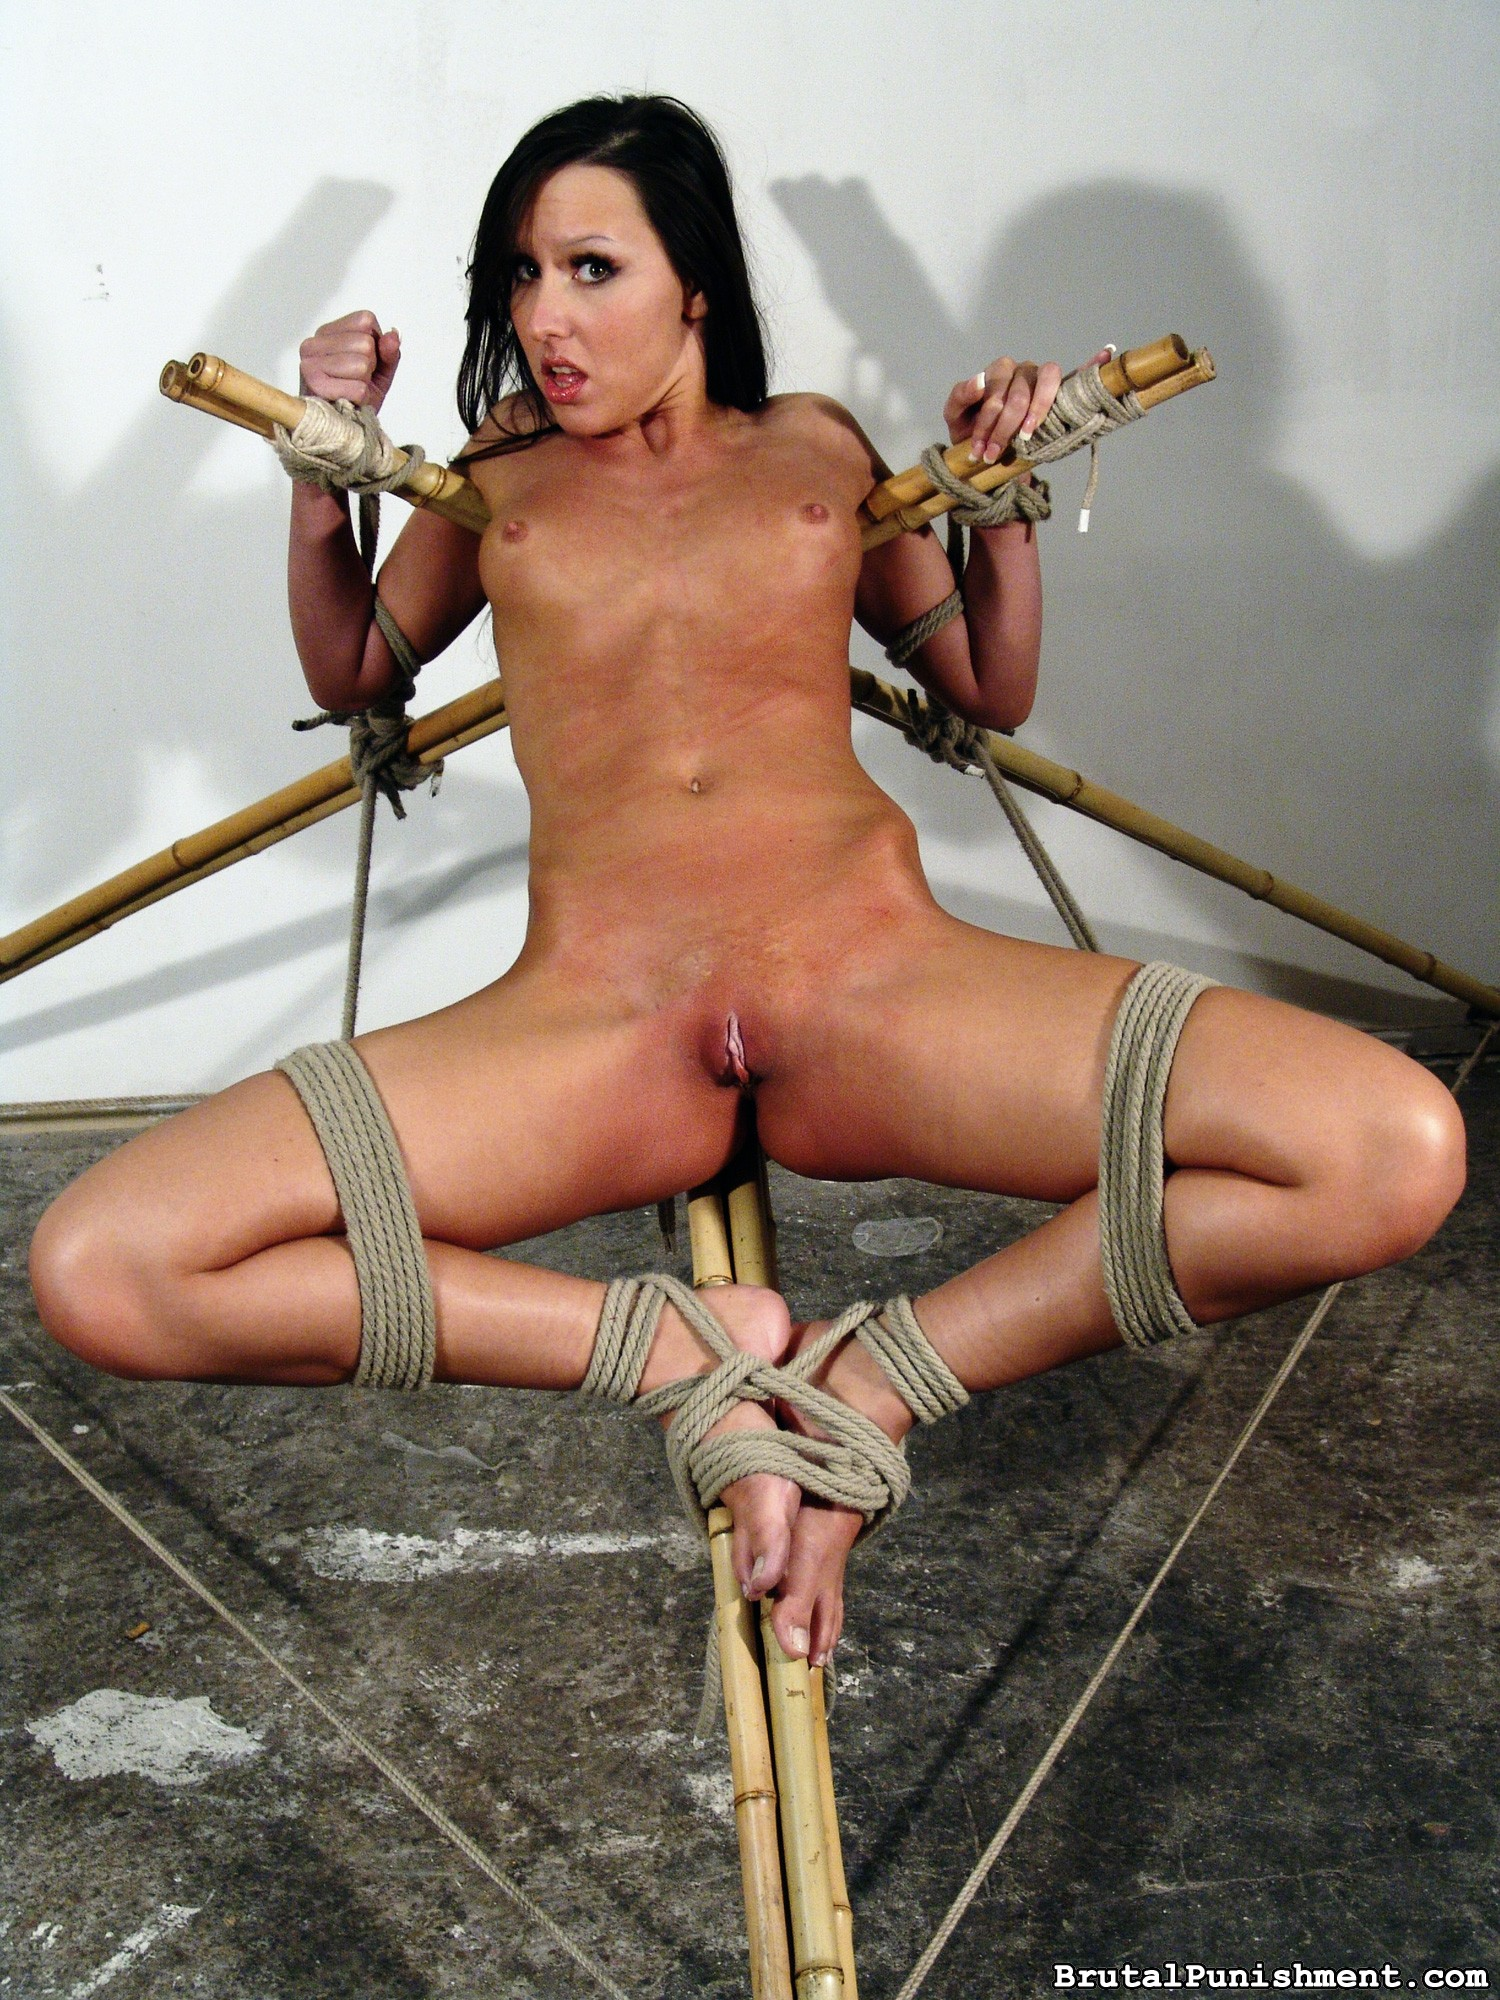 Nasty Agony Cockslut Nicole Suffers Some Other Restrain Bondage Consultation